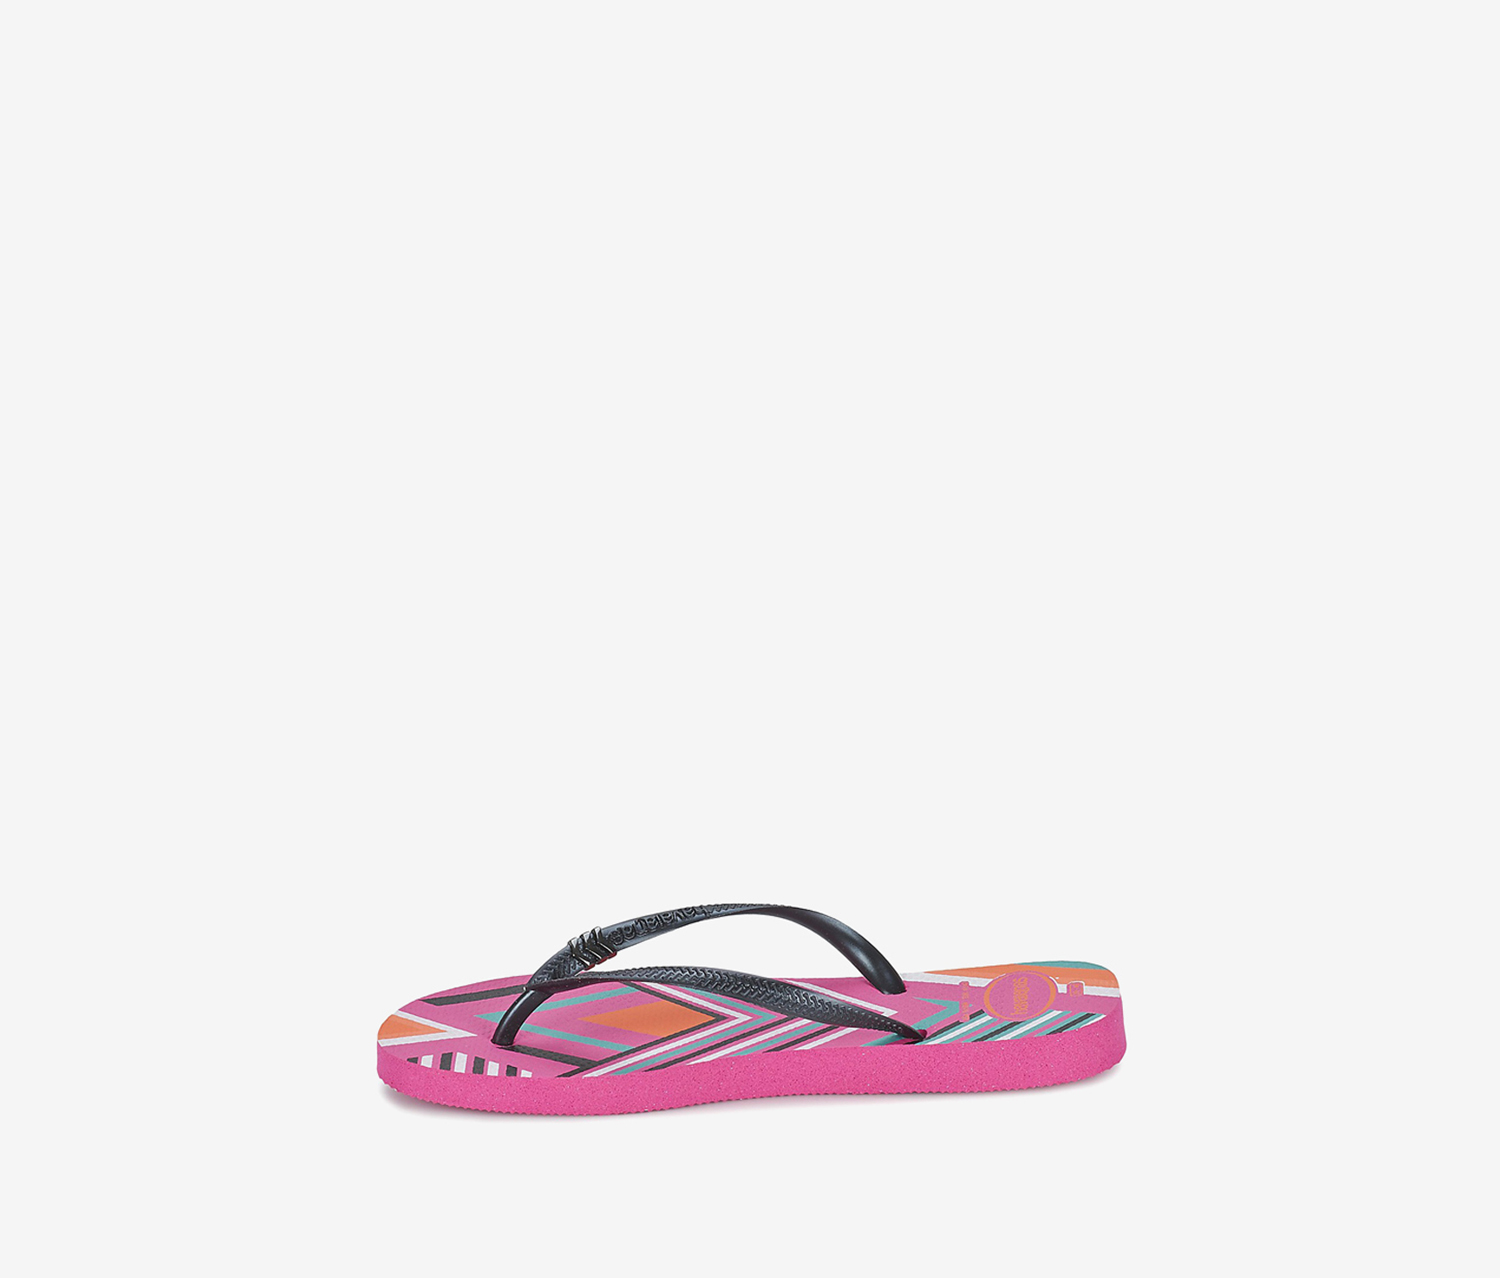 ca6a006cfc7 Flops Slim Tribal Kids Girl's Shocking Havaianas Pink Flip wHOXqTTE